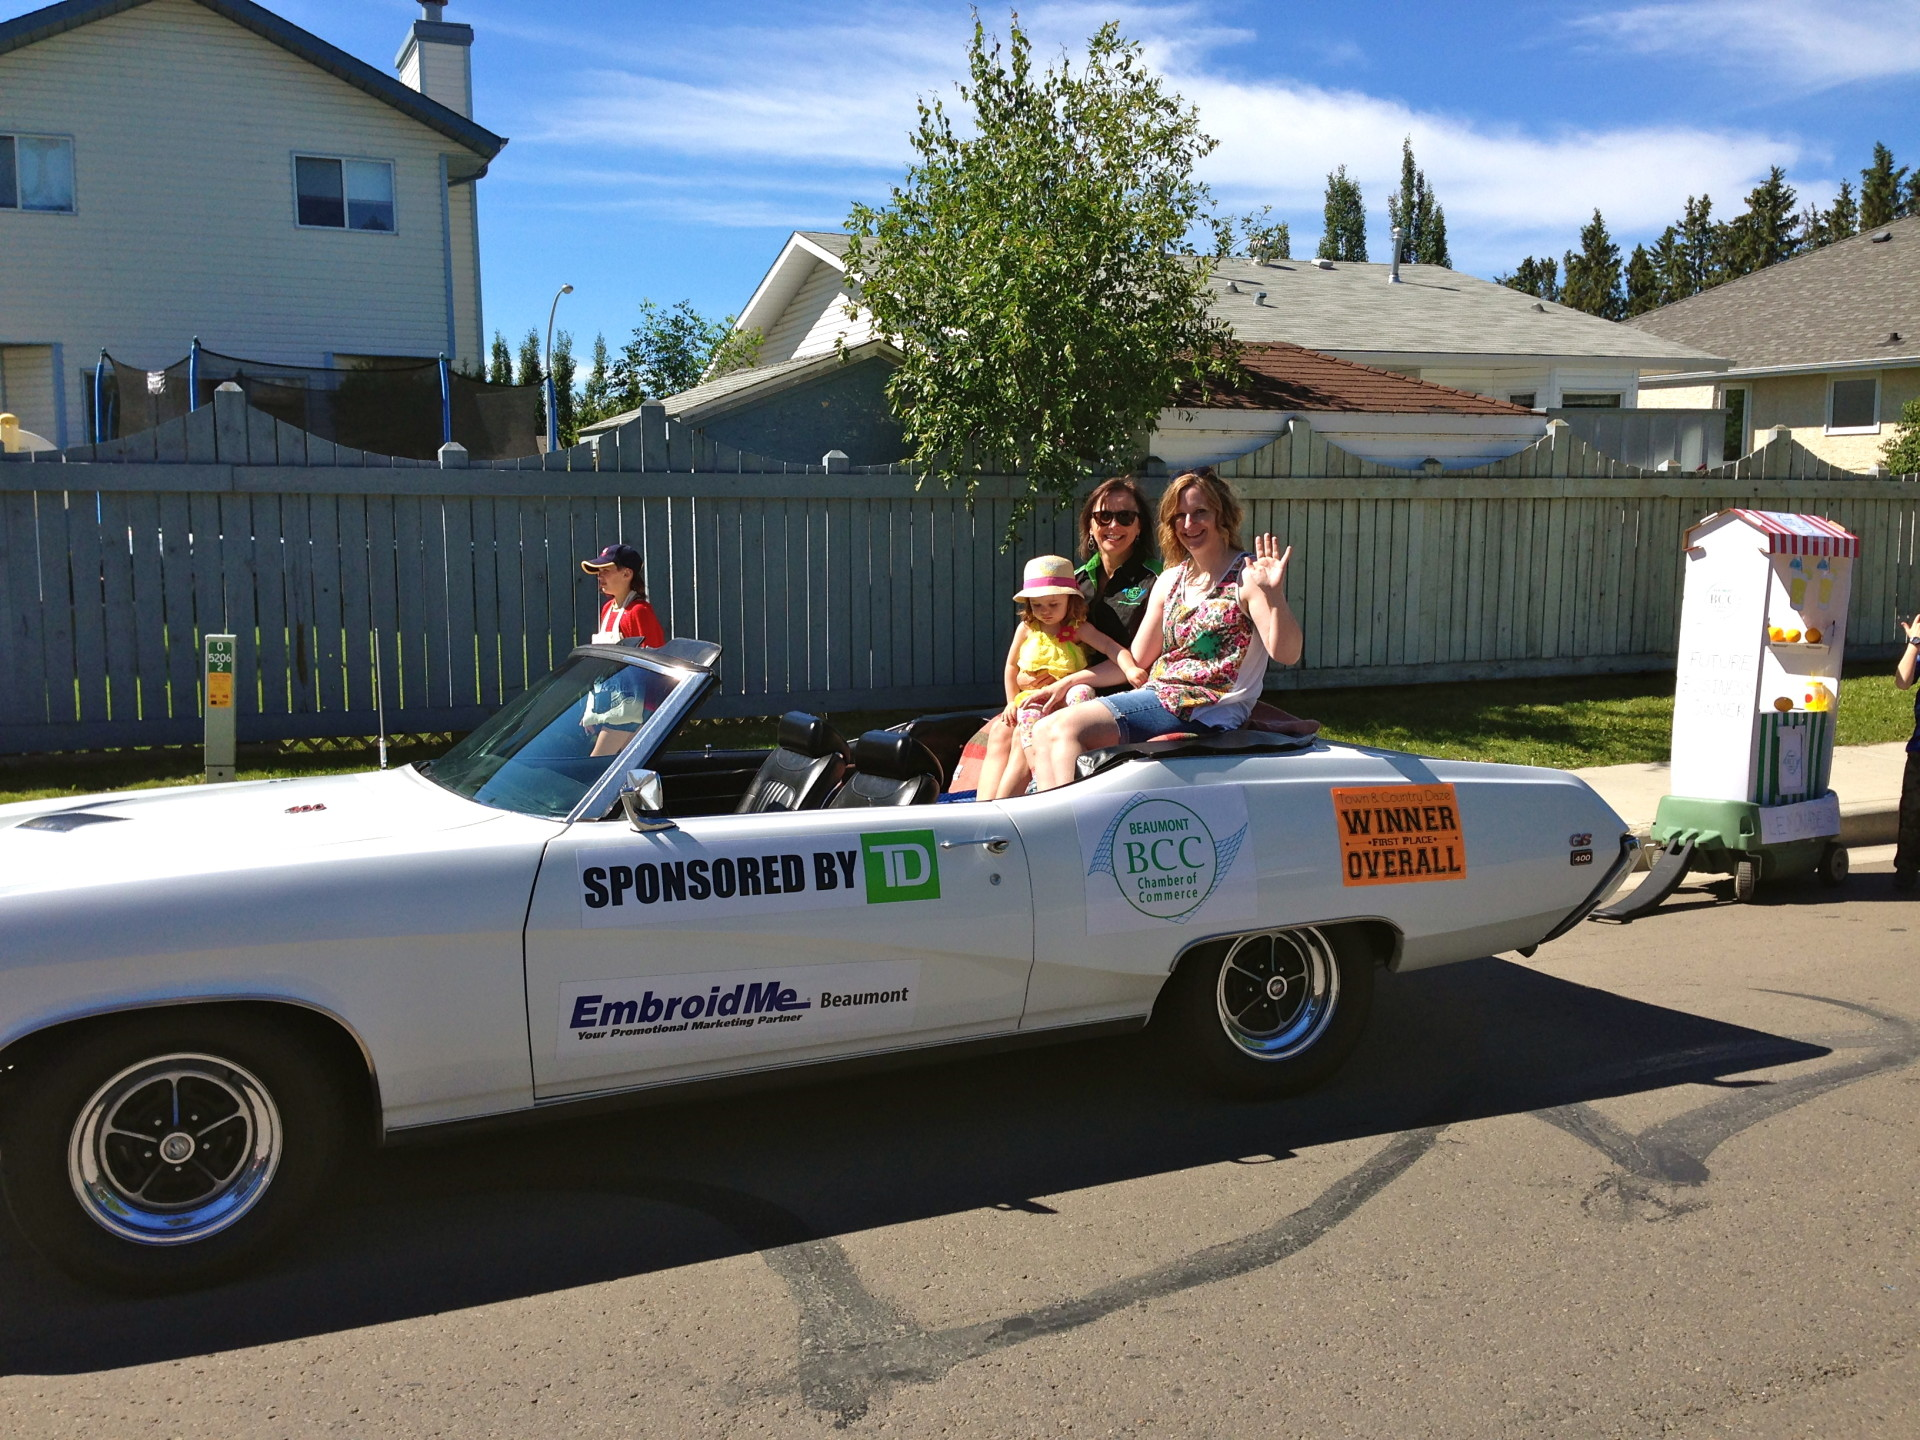 Chamber_of_Commerce_President_and_Executive_Assistant_in_Classic_Car_Pulling_Winning_Float.jpg